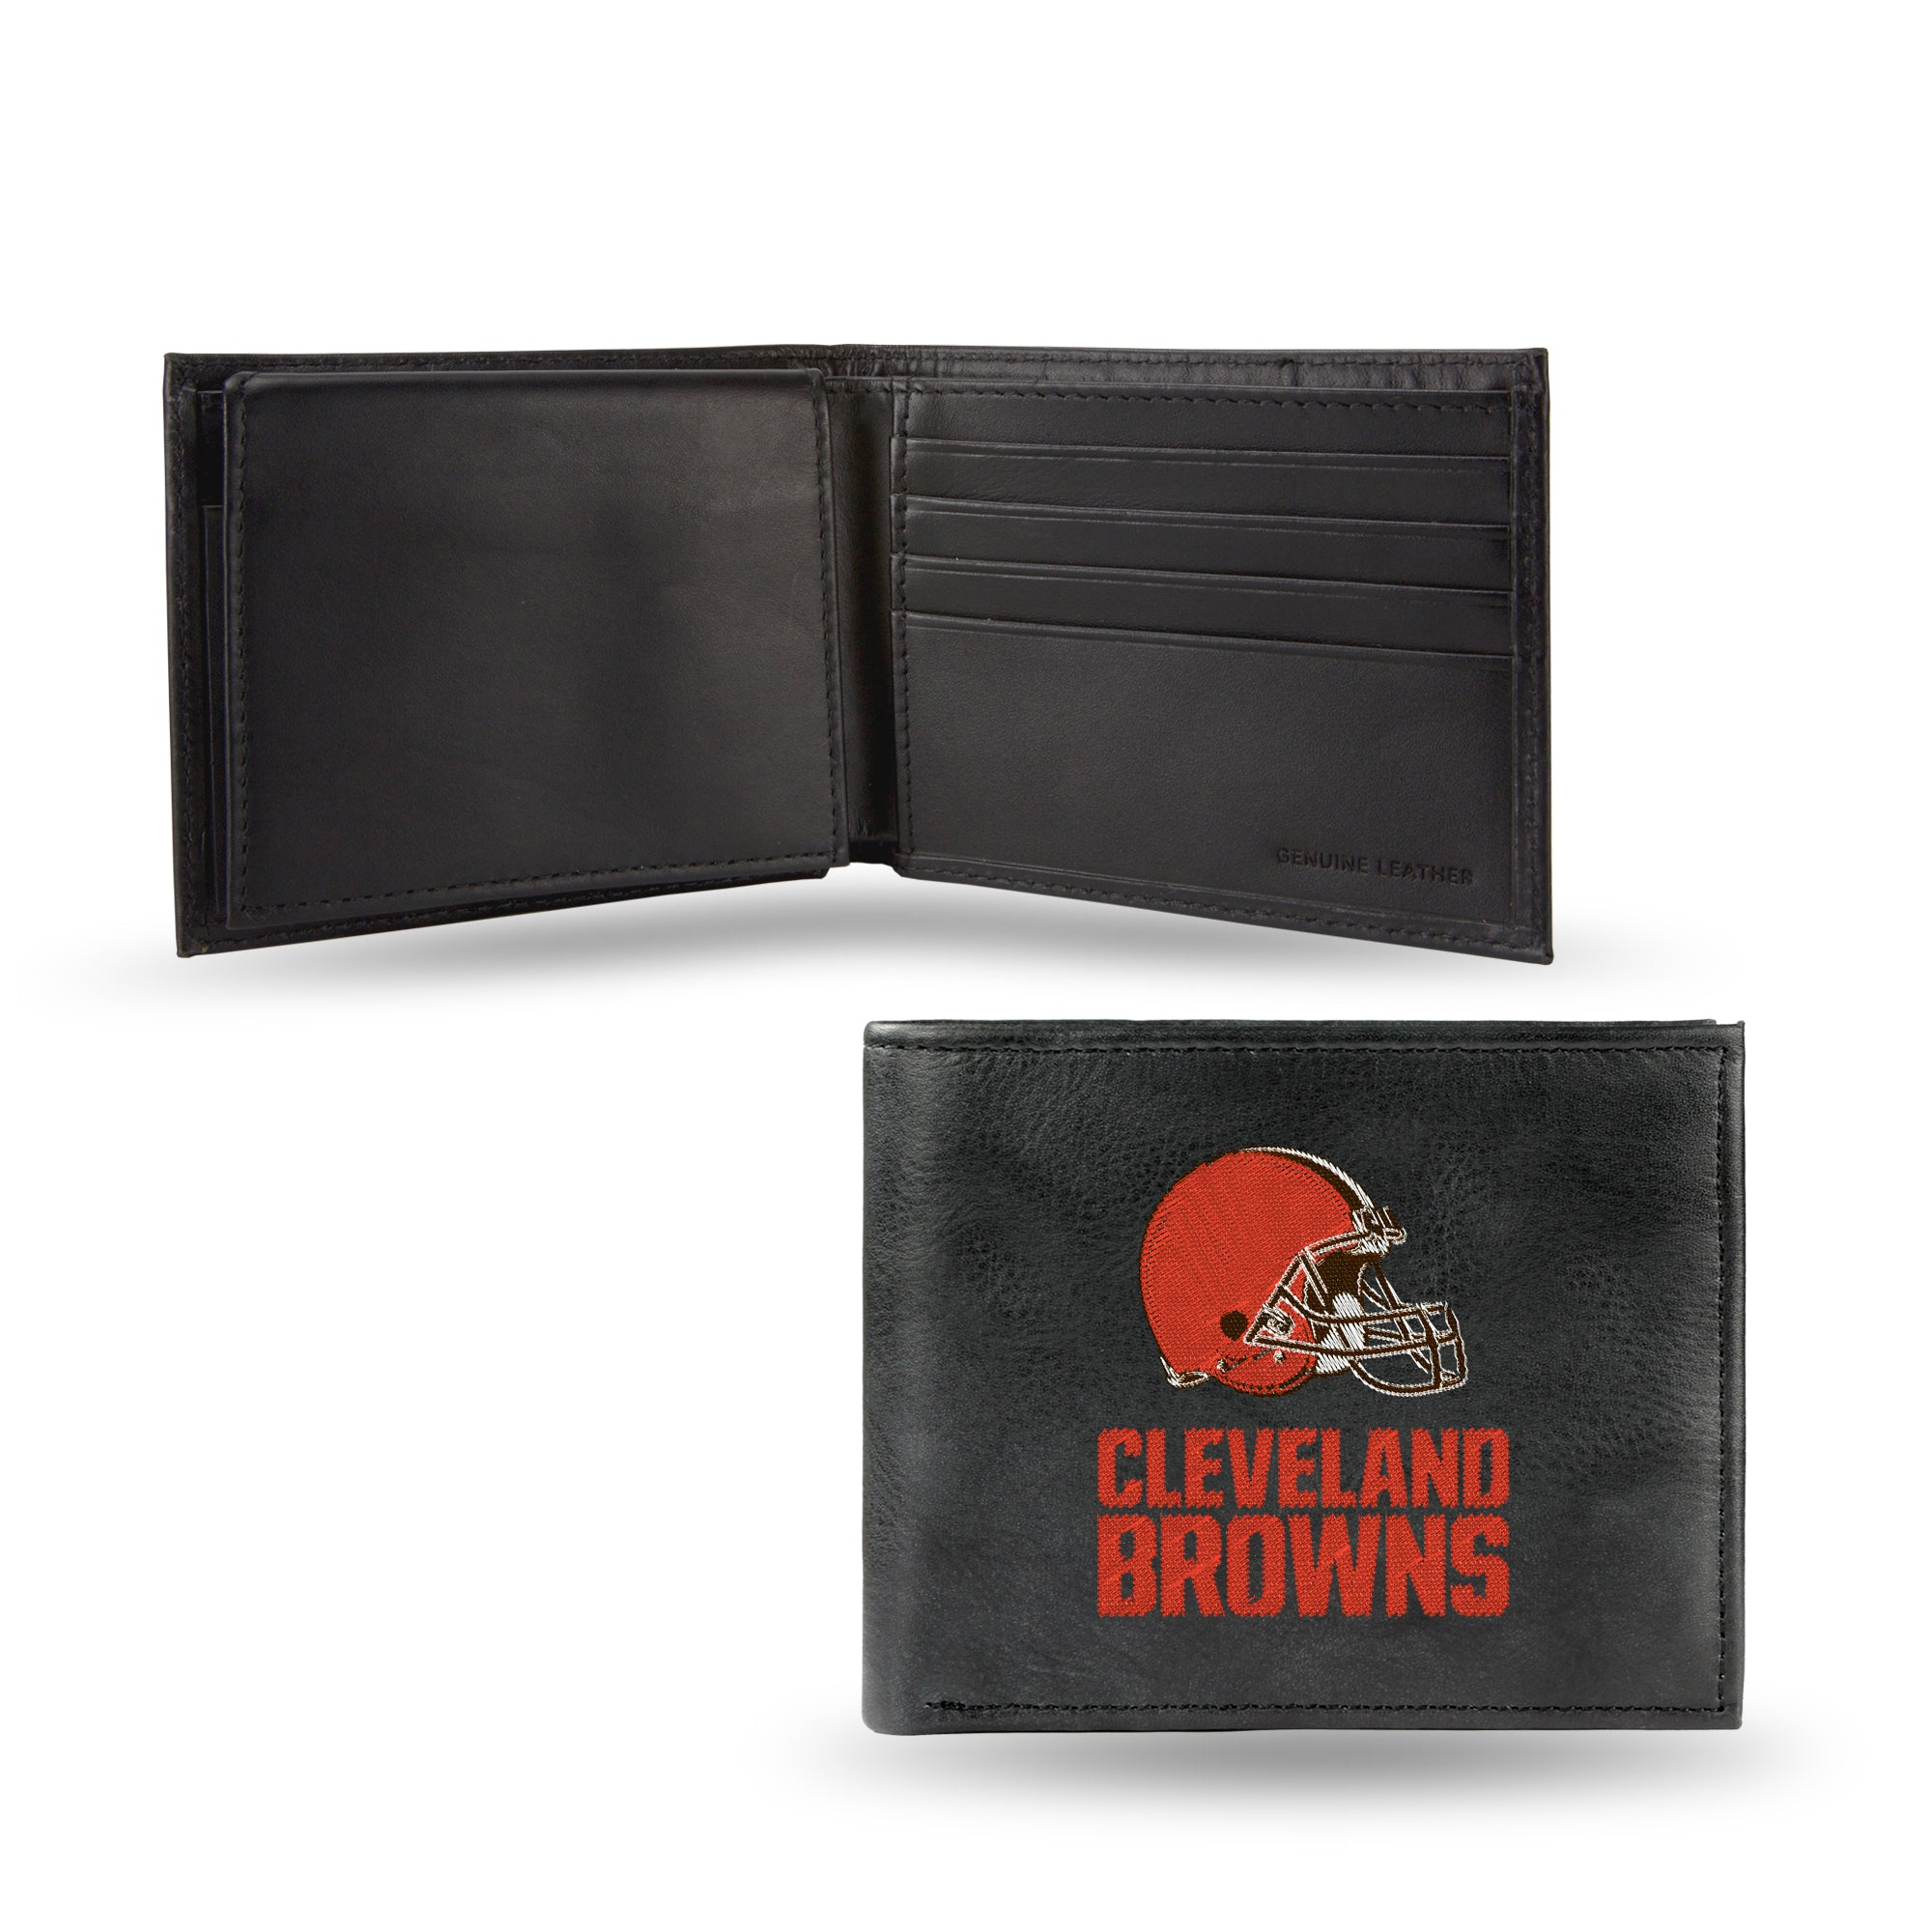 NFL Cleveland Browns Embroidered Billfold / Wallet